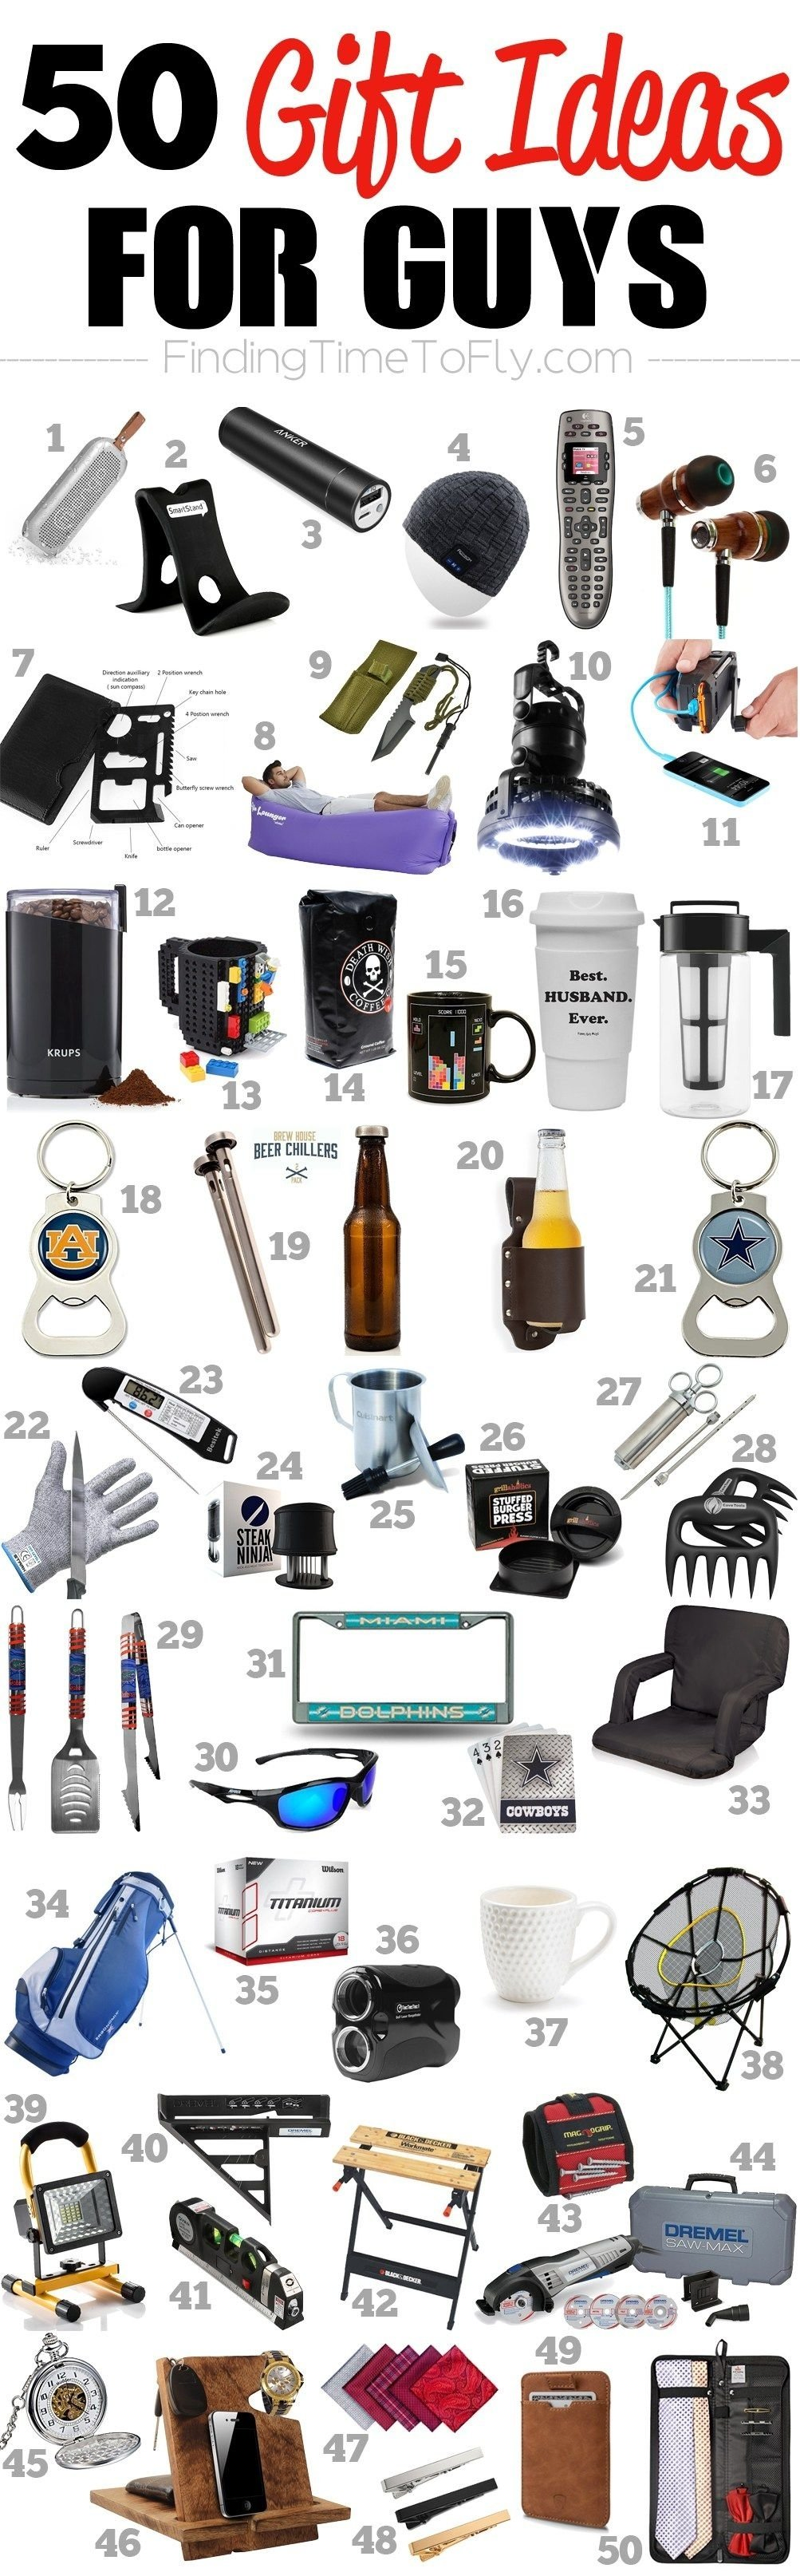 10 Most Popular Christmas Gift Idea For Men 50 gifts for guys for every occasion outdoor gear christmas gifts 6